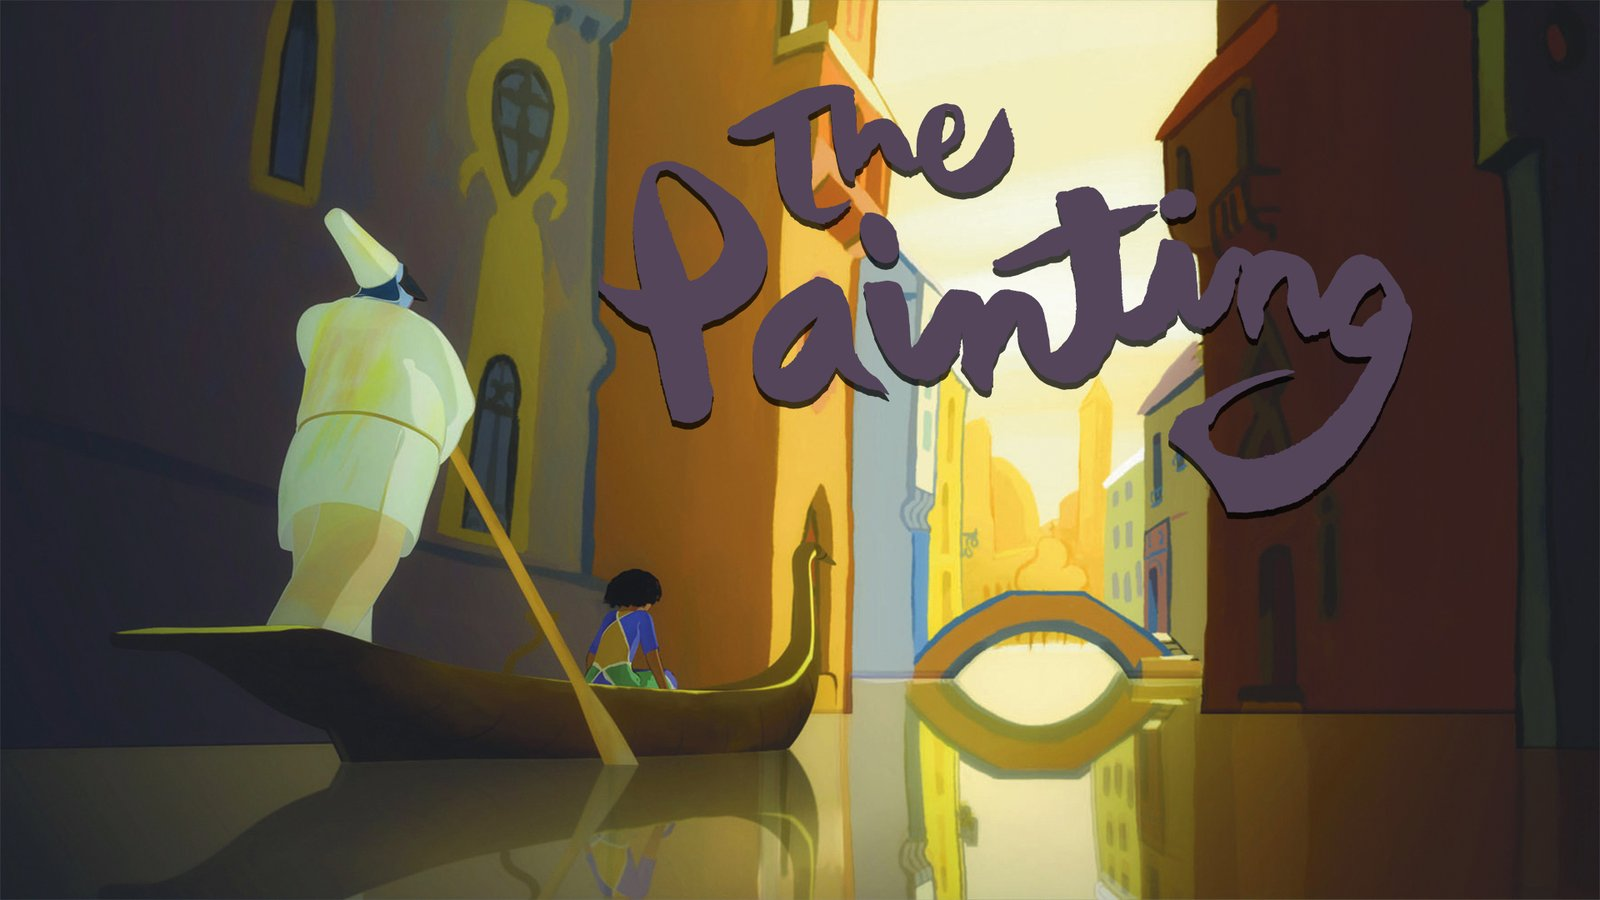 The Painting - Le tableau